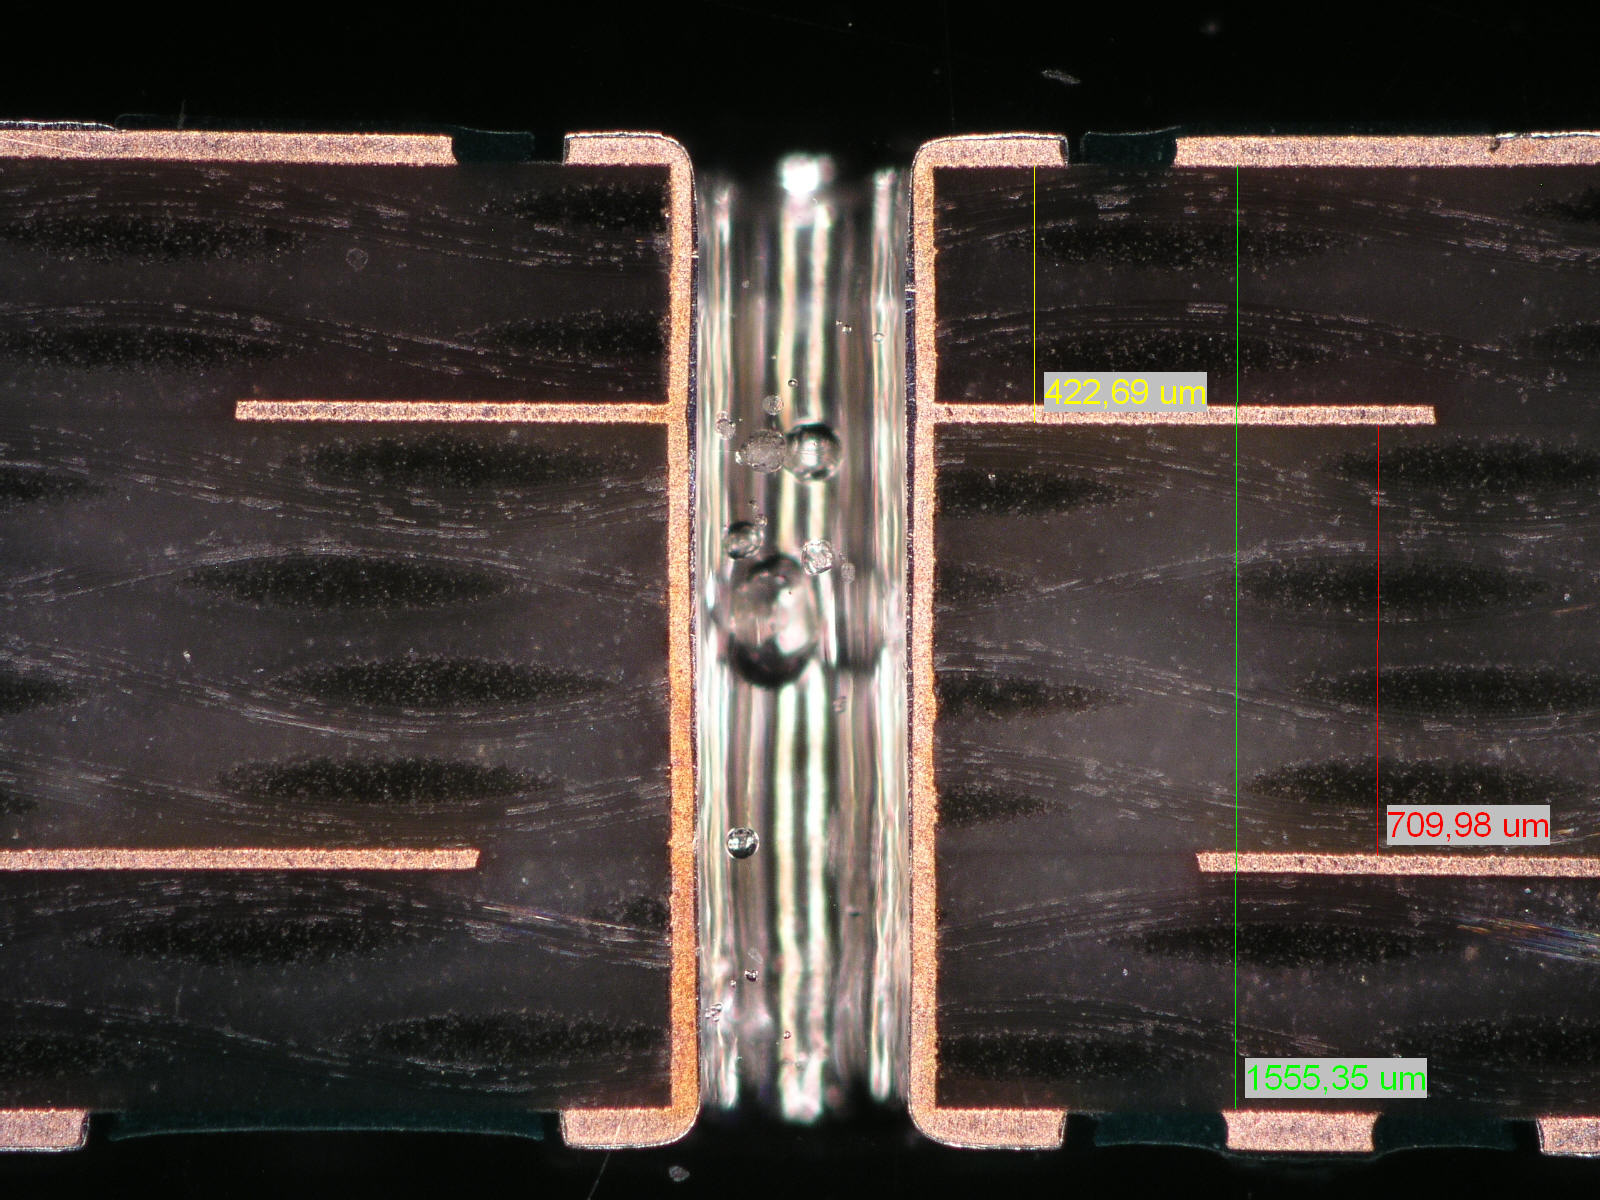 How Do We Assure The Quality Of Your Pcb Part 3 Eurocircuits Multilayer Printed Wiring Board Inspect Registration Inner Copper Lands To Holes Next Picture Shows Same As Last One But When Measure